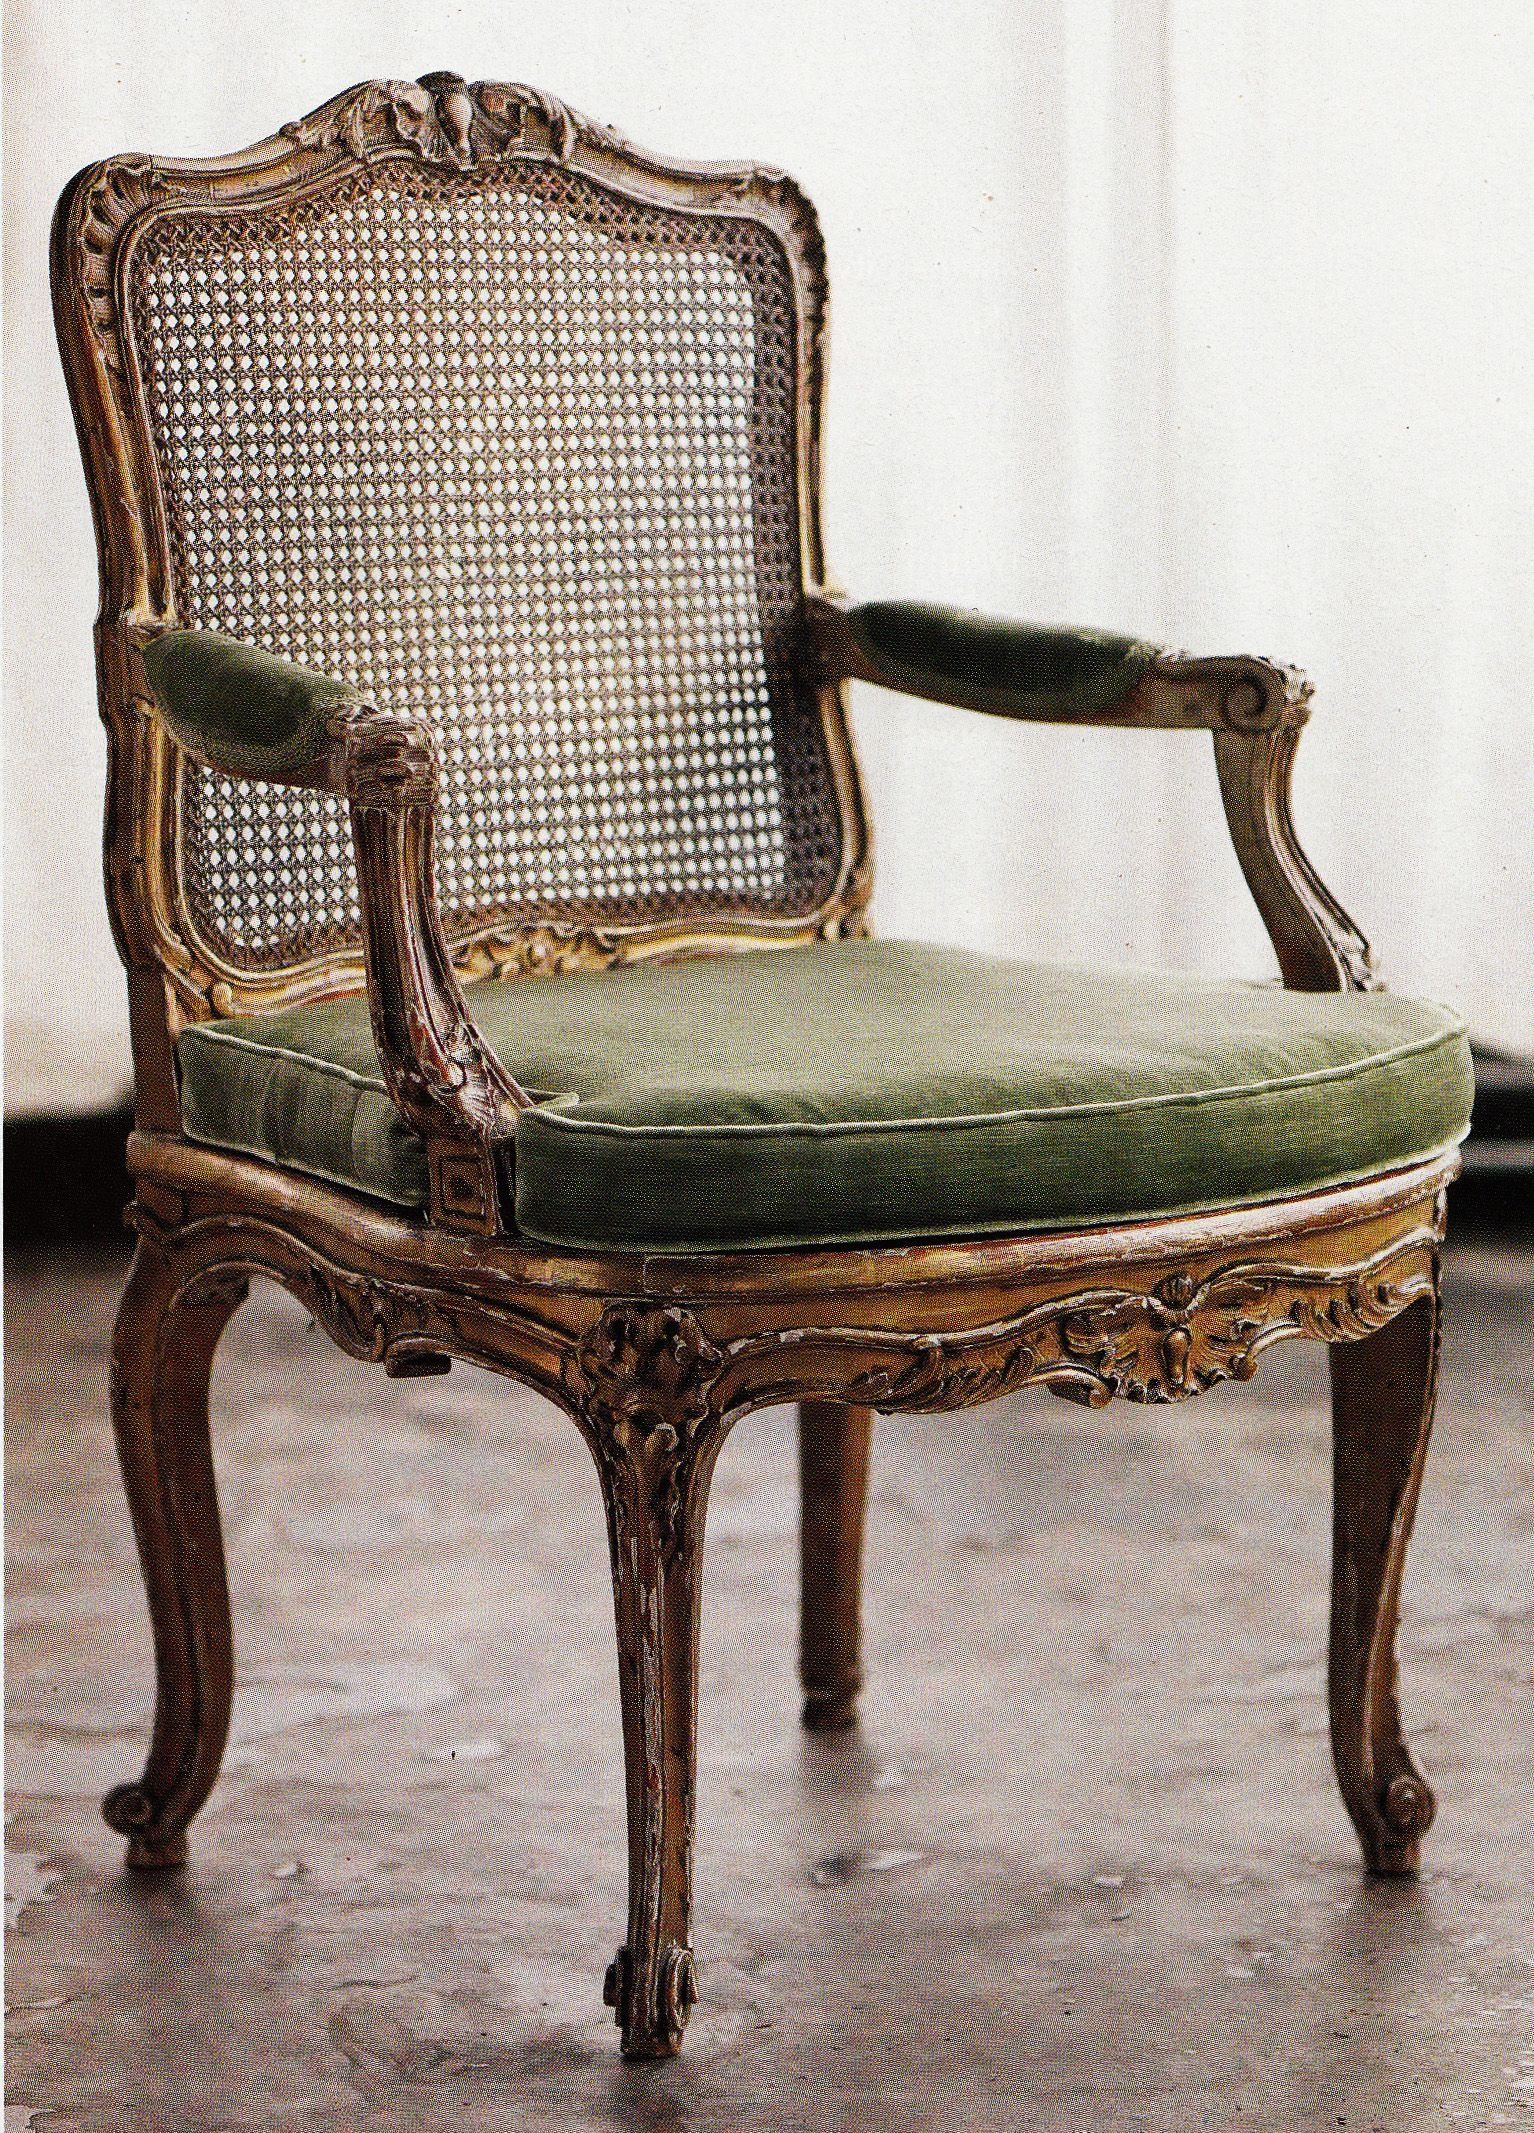 Circa 1880 Louis Xv Style Chair Rococo Furniture Furniture Antique French Furniture